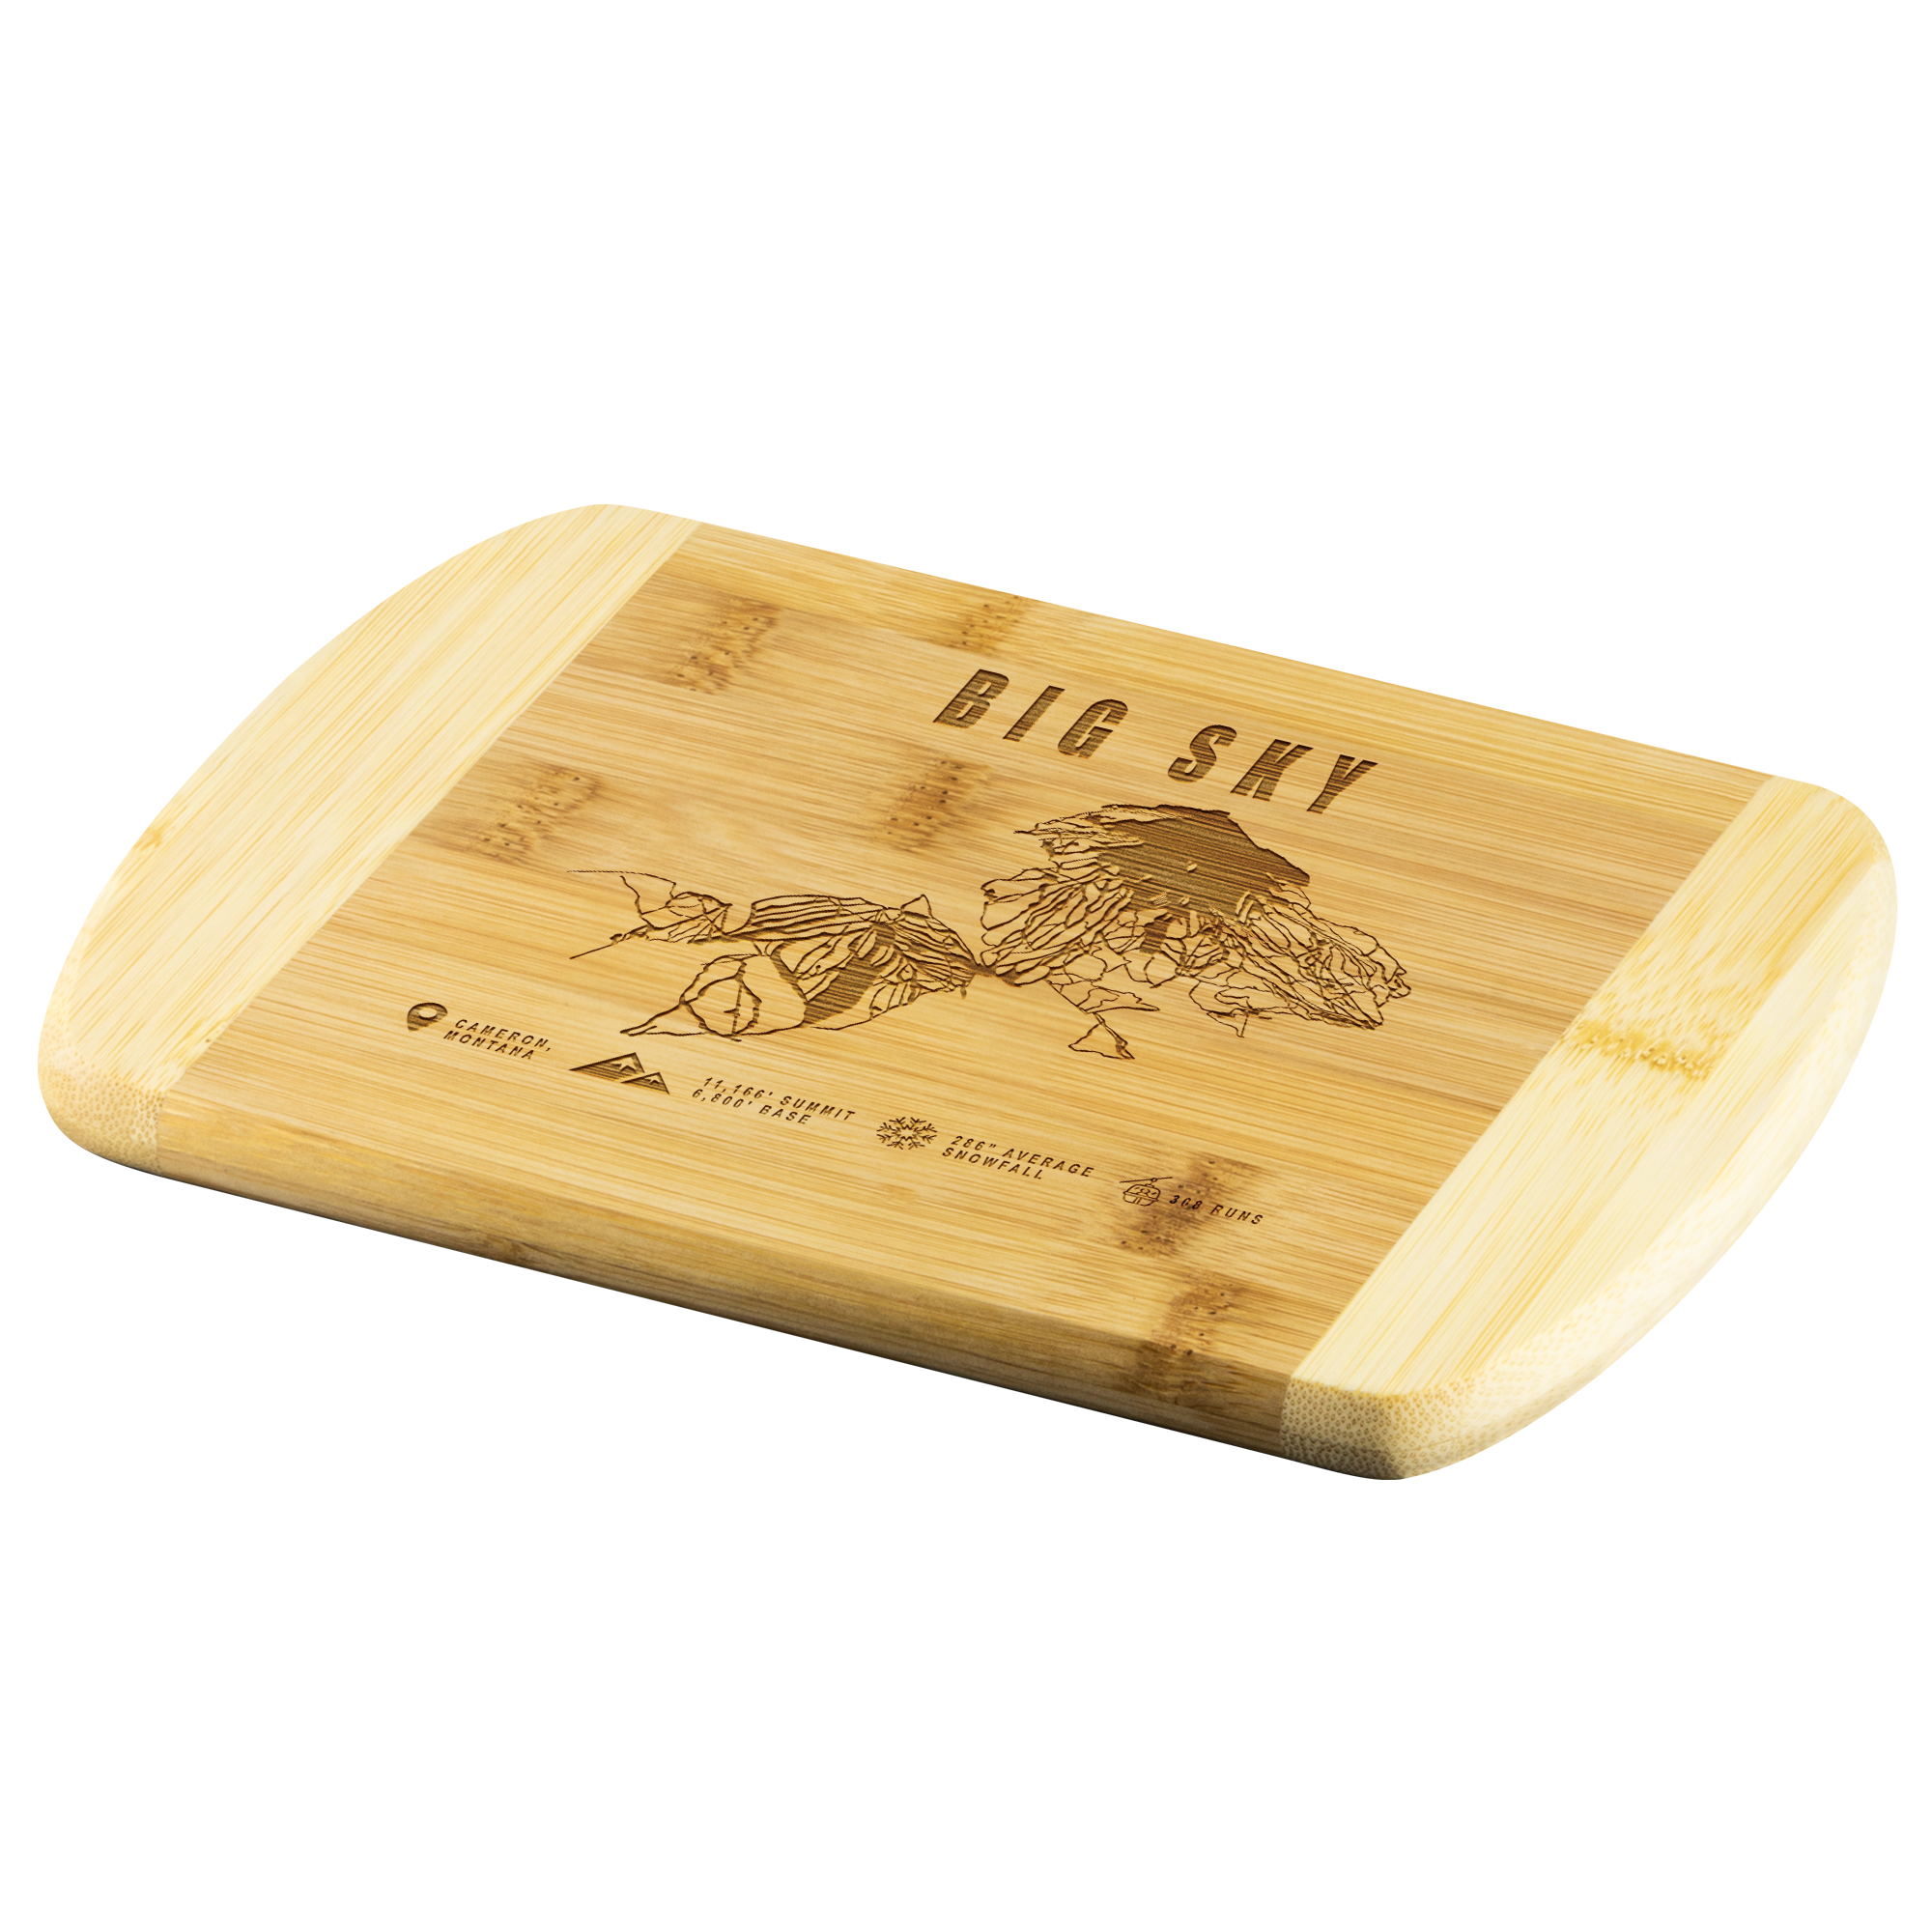 Big Sky Montana Ski-Resort Map Bamboo Cutting Board Round Edge